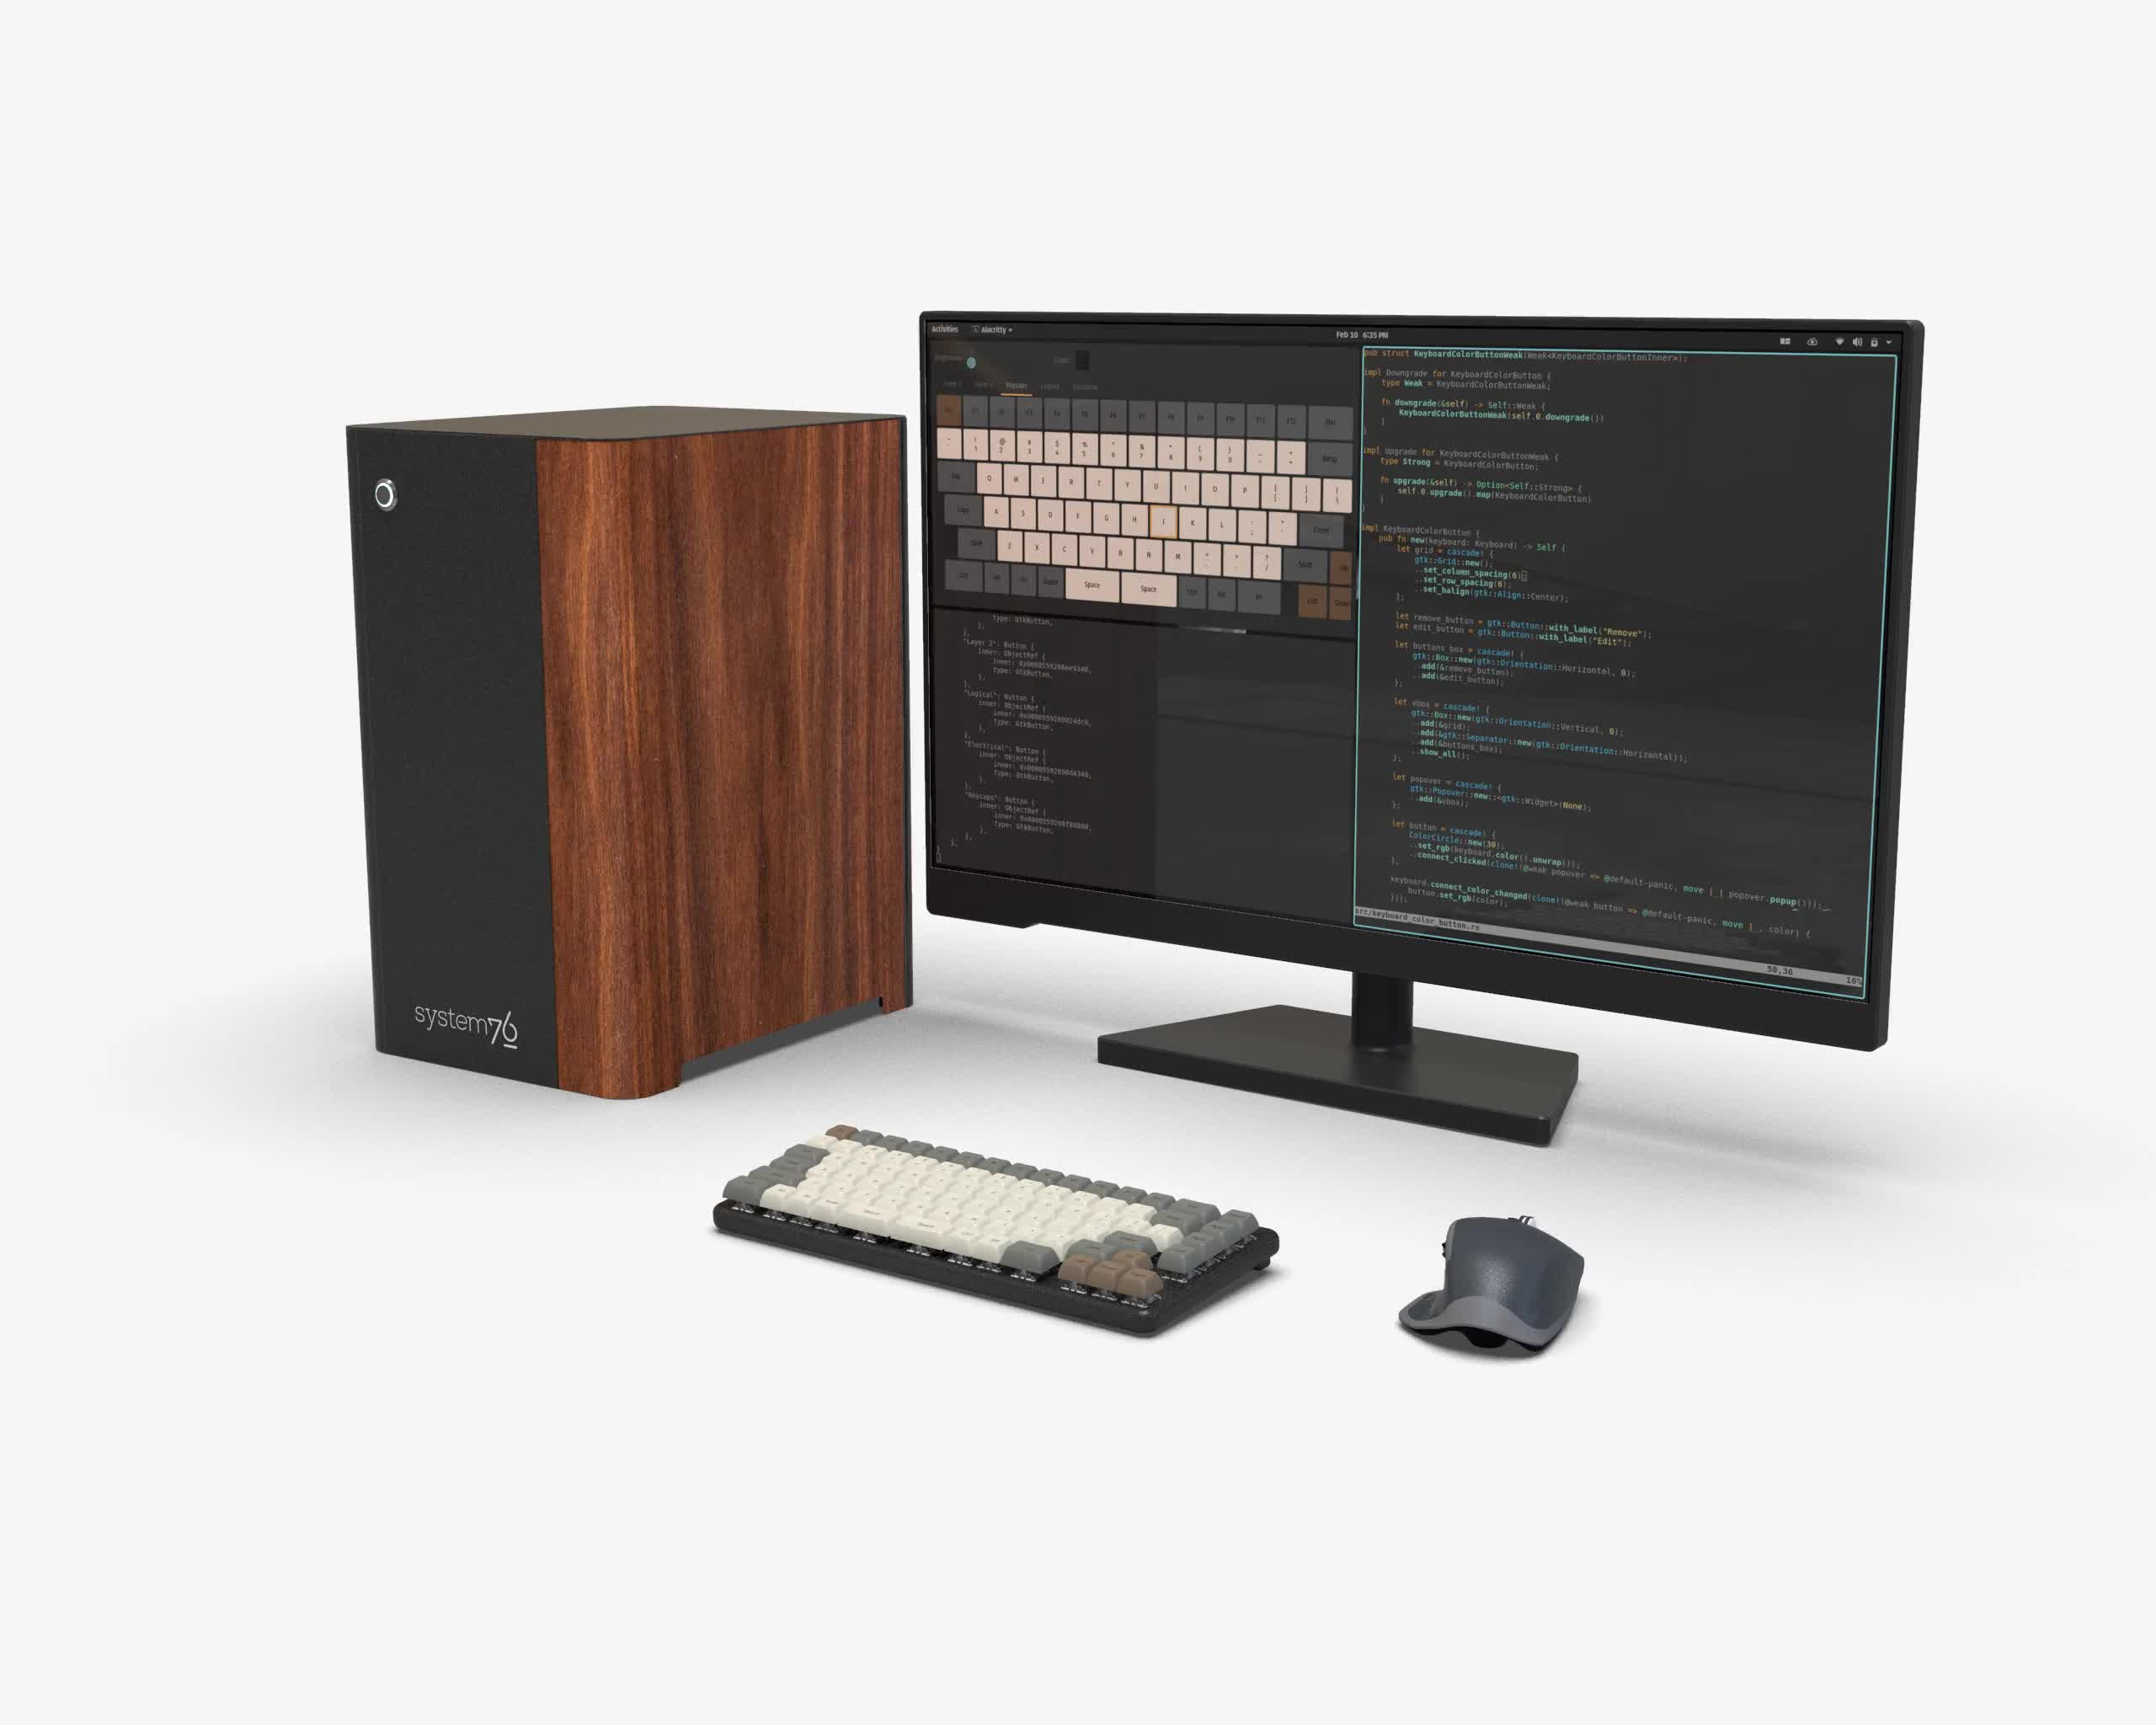 Desk setup with a Thelio workstation, an external display, and the Launch keyboard where brown, red, or blue keycaps of the Escape and Arrow keys match the colored veneer on a Thelio machine.